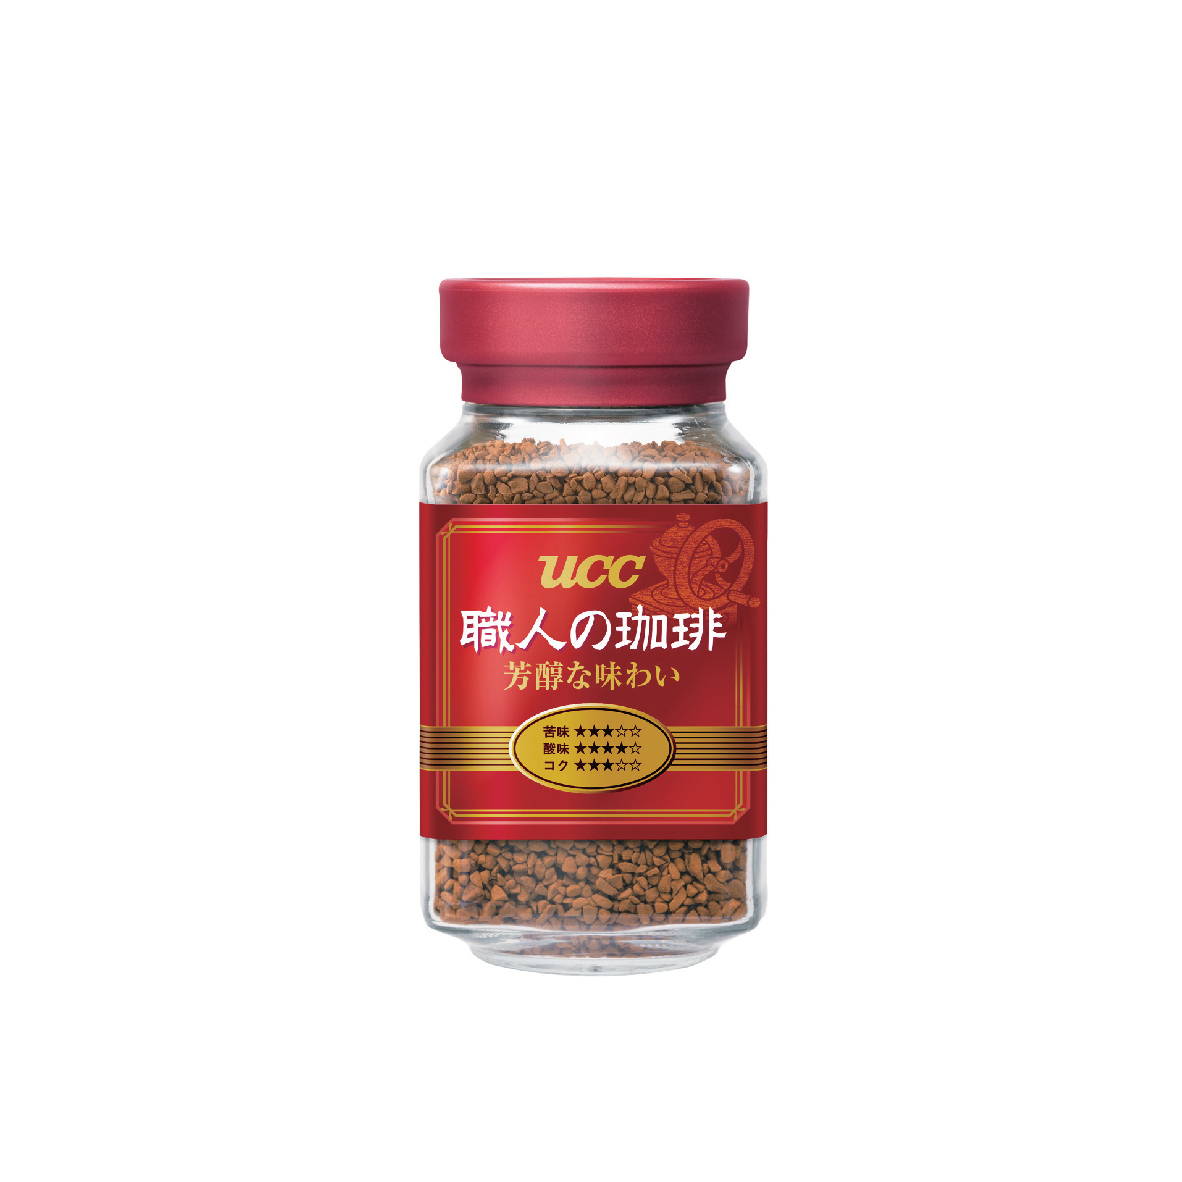 UCC Craftsman's Coffee Instant Coffee Rich Taste